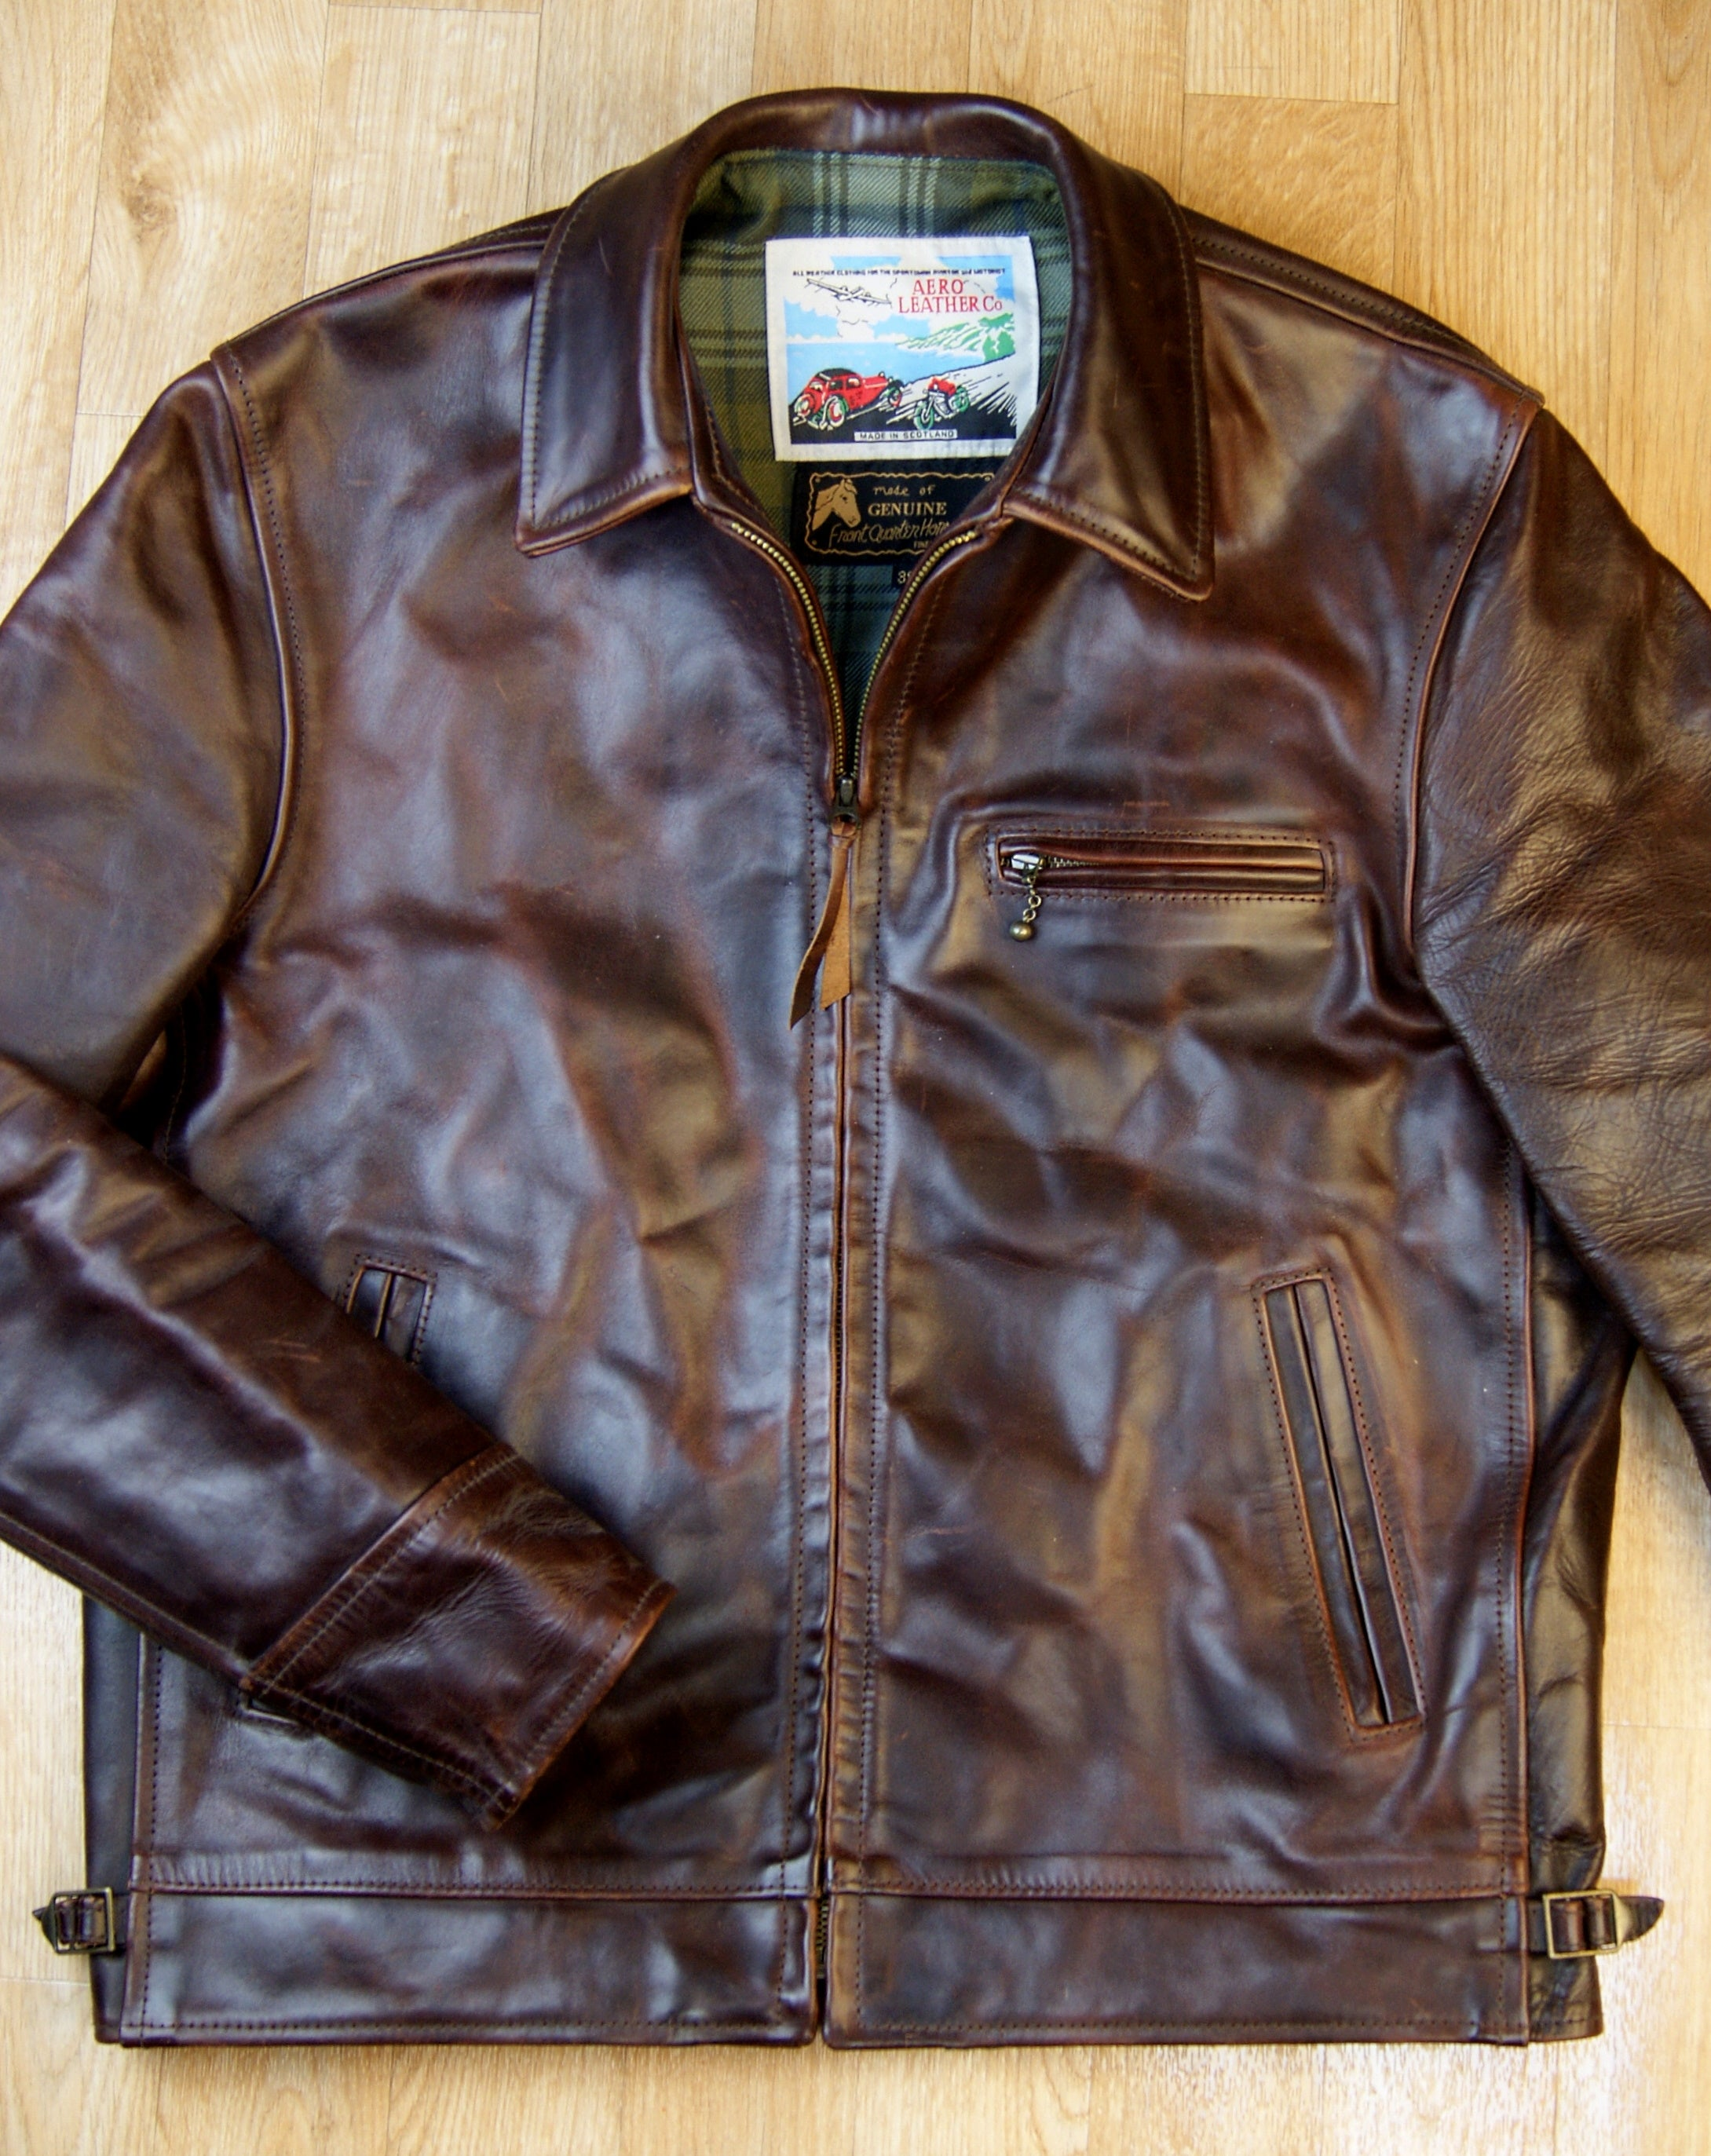 Used Aero Highwayman, sz 38, Brown Chromexcel Horsehide